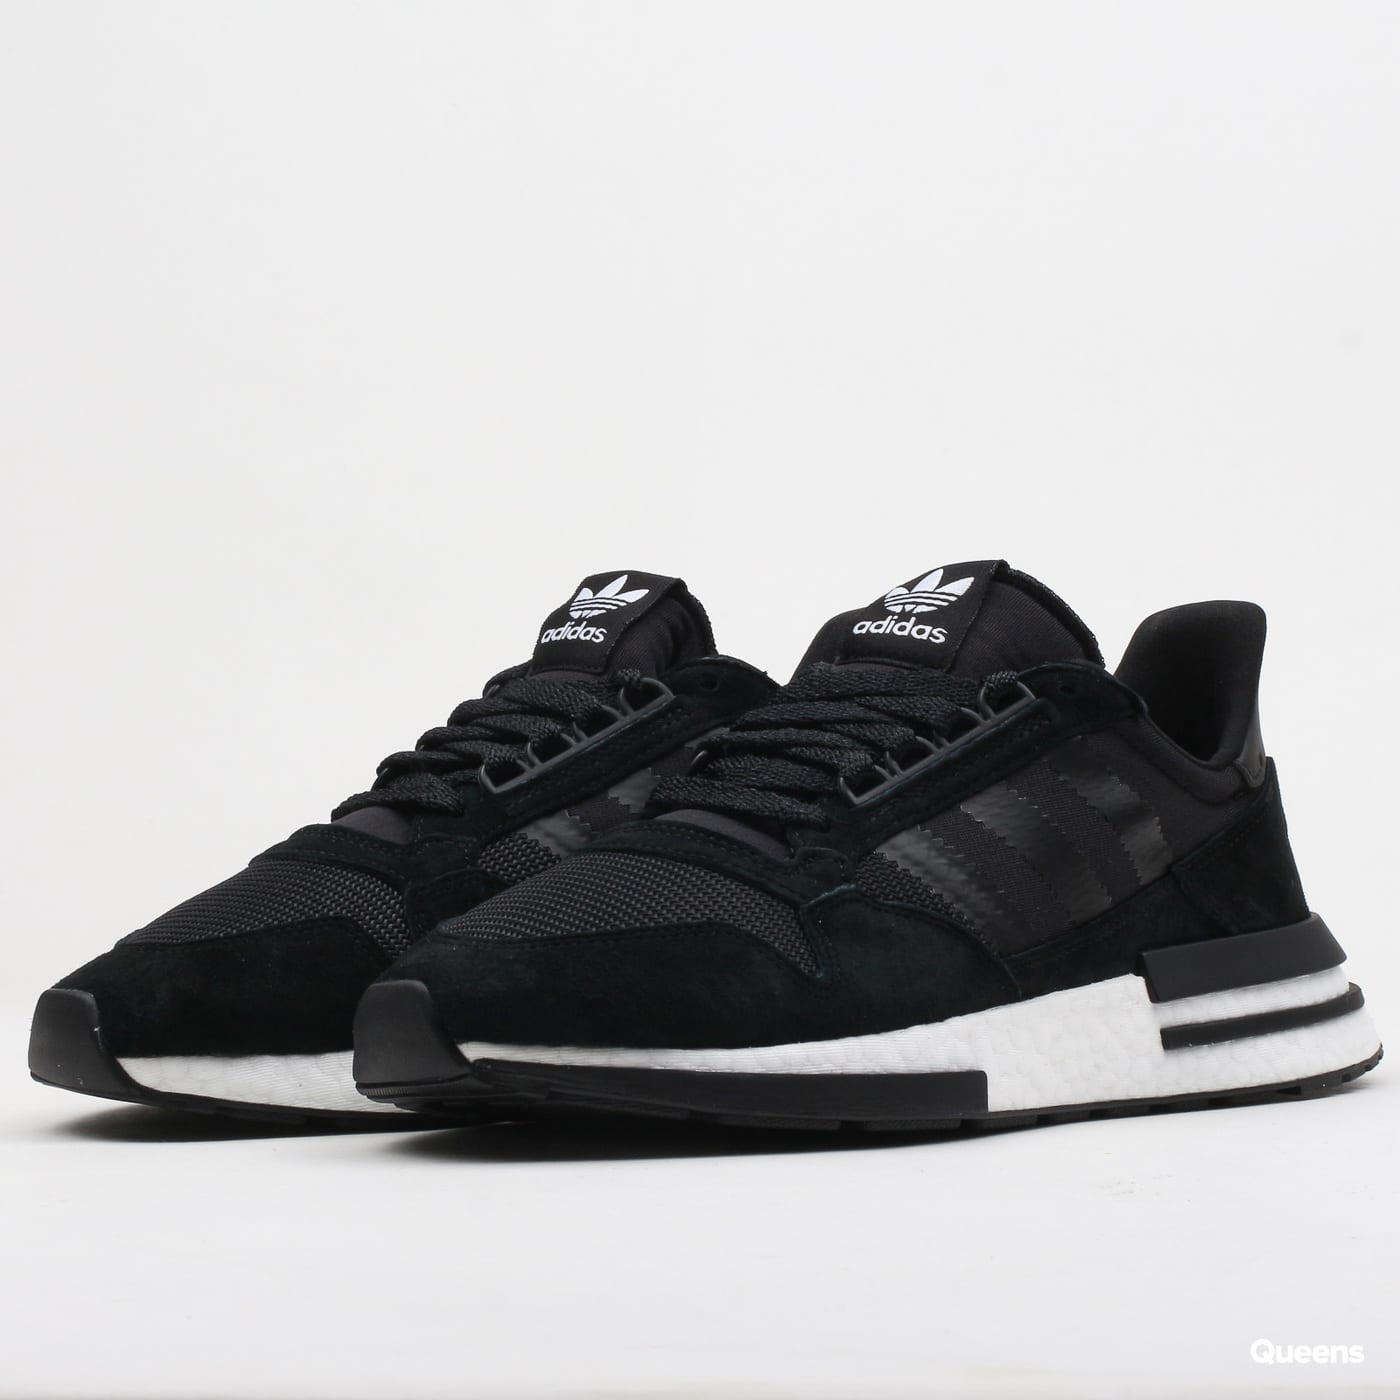 the latest a7fbf a3d26 adidas Originals ZX 500 RM cblack / ftwwht / cblack